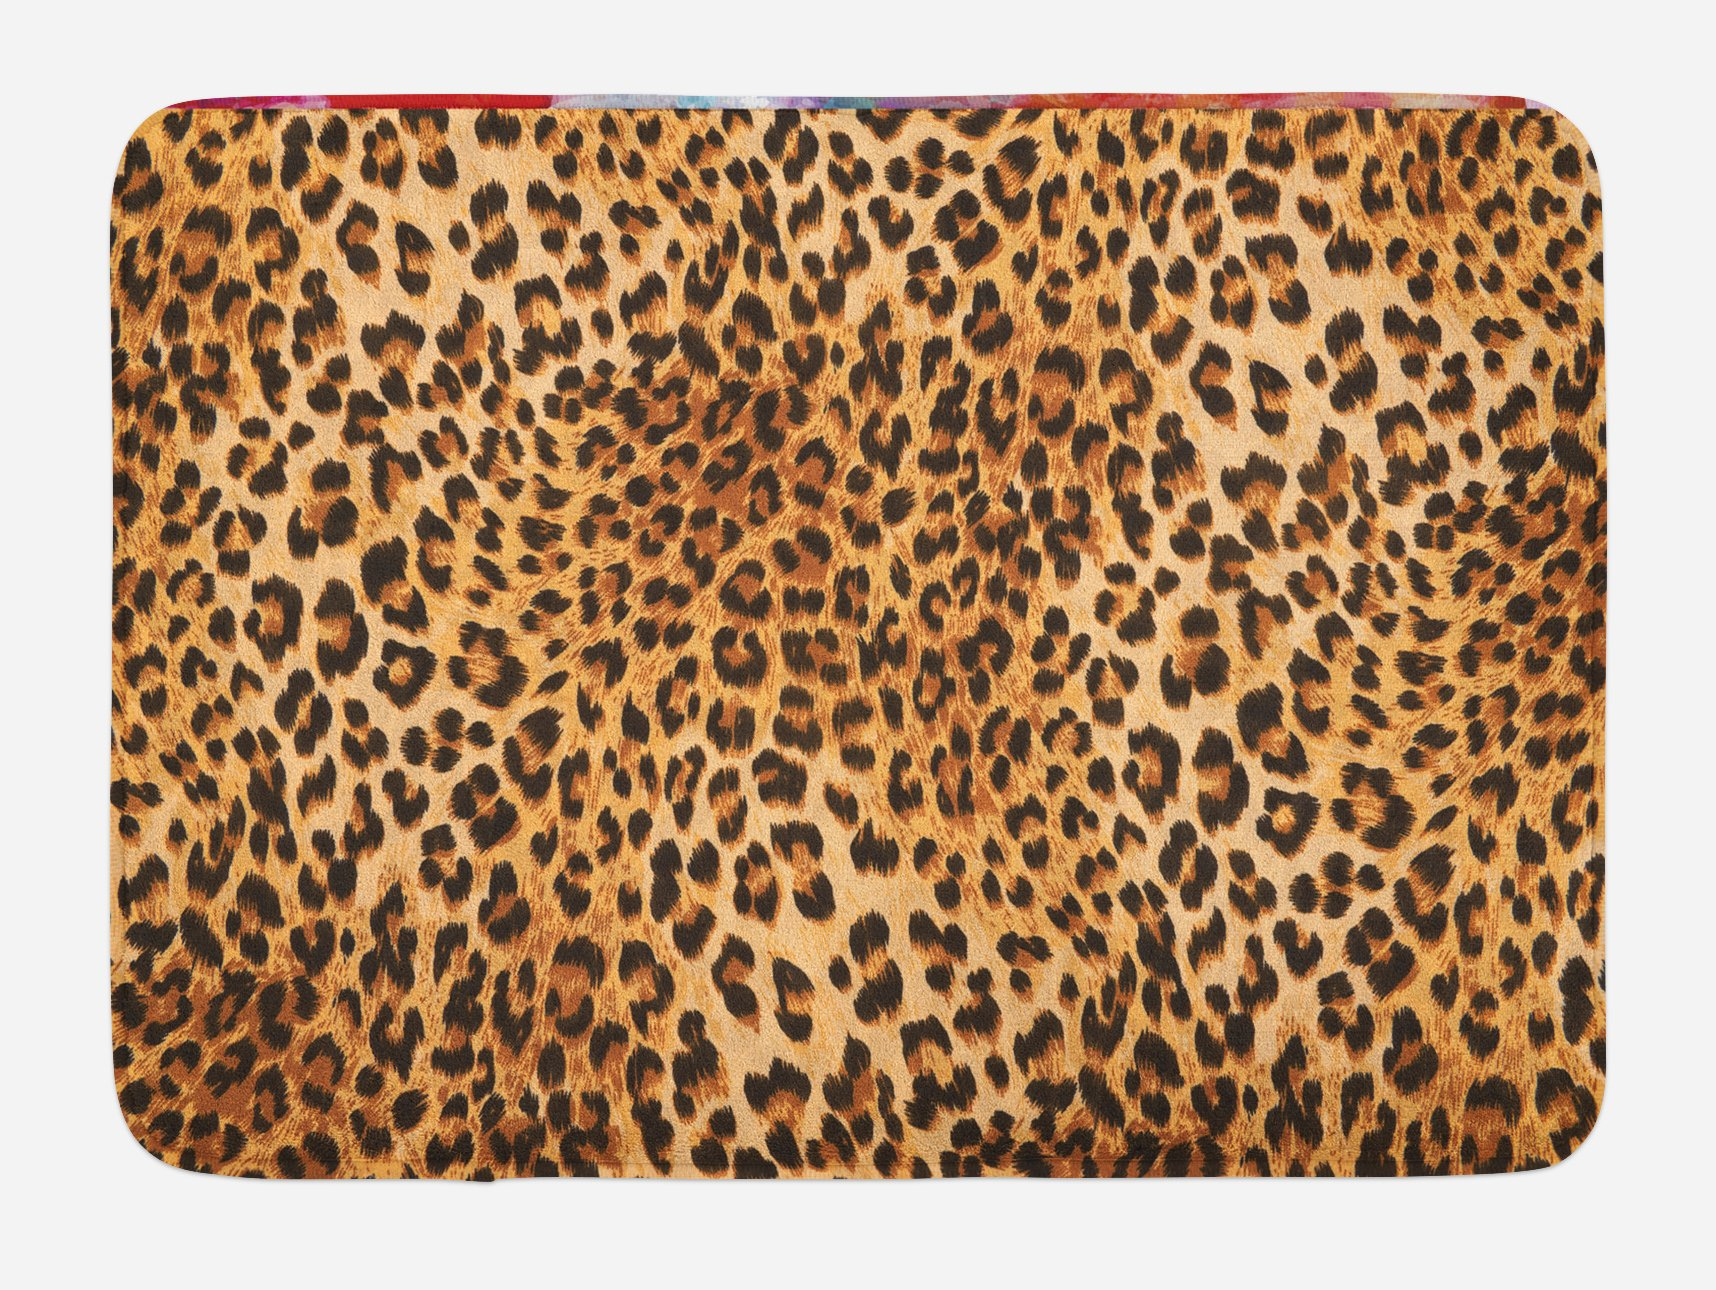 Lunarable Animal Print Bath Mat, Wild Animal Leopard Skin Pattern Wildlife Nature Inspired Modern Illustration, Plush Bathroom Decor Mat with Non Slip Backing, 29.5 W X 17.5 W Inches, Sand Brown